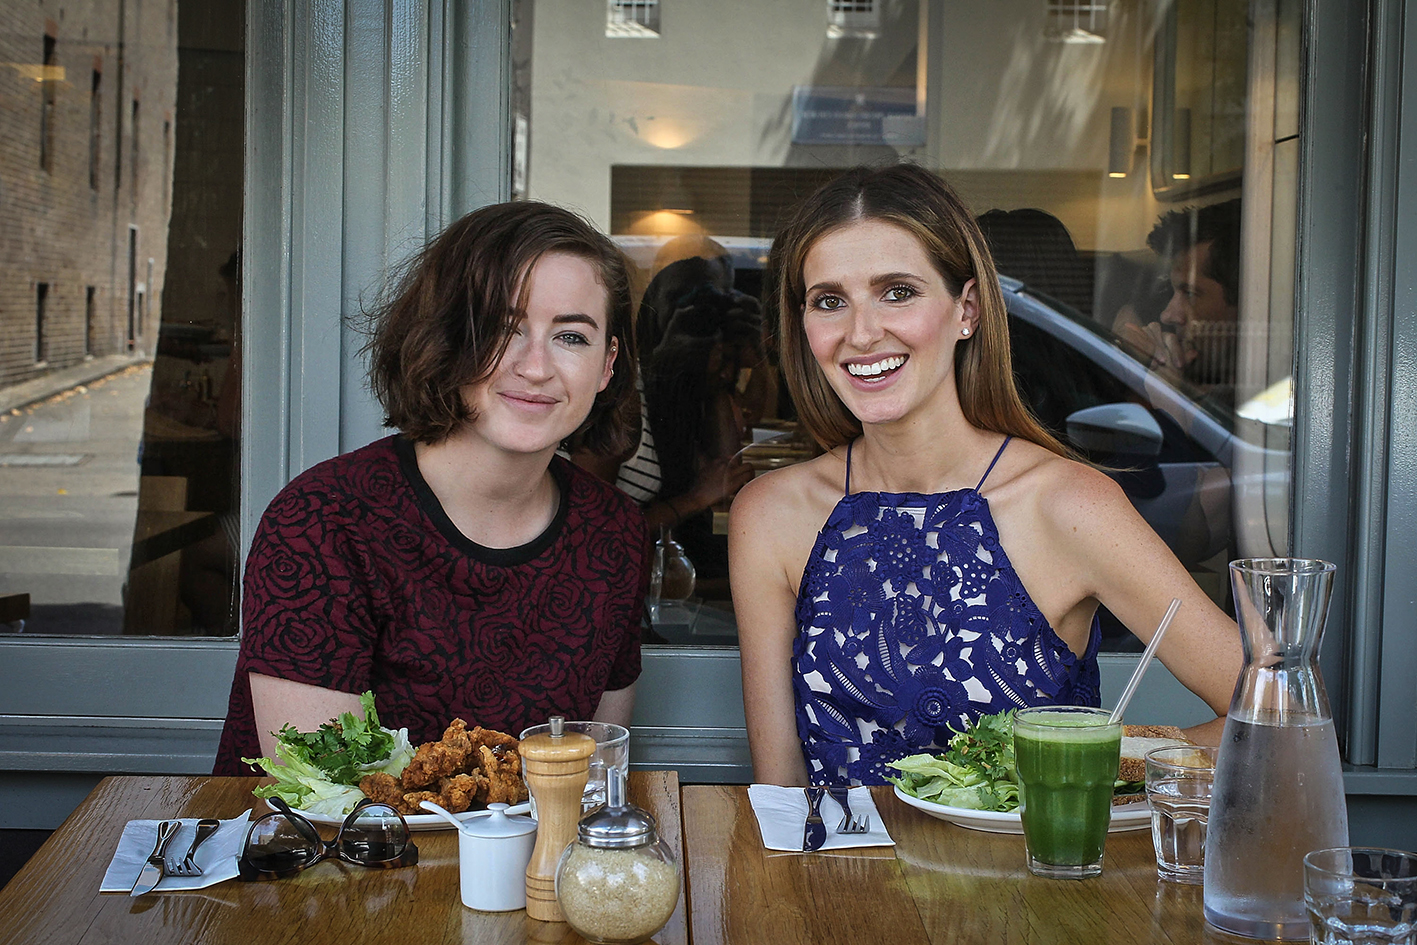 SYDNEY, AUSTRALIA - FEBRUARY 15: Singer, Songwriter Megan Washington is seen at lunch with Kate Waterhouse for her 'Date With Kate' column at Bills, Surry Hills on February 15, 2016 in Sydney, Australia. (Photo by Ben Rushton/Fairfax Media)